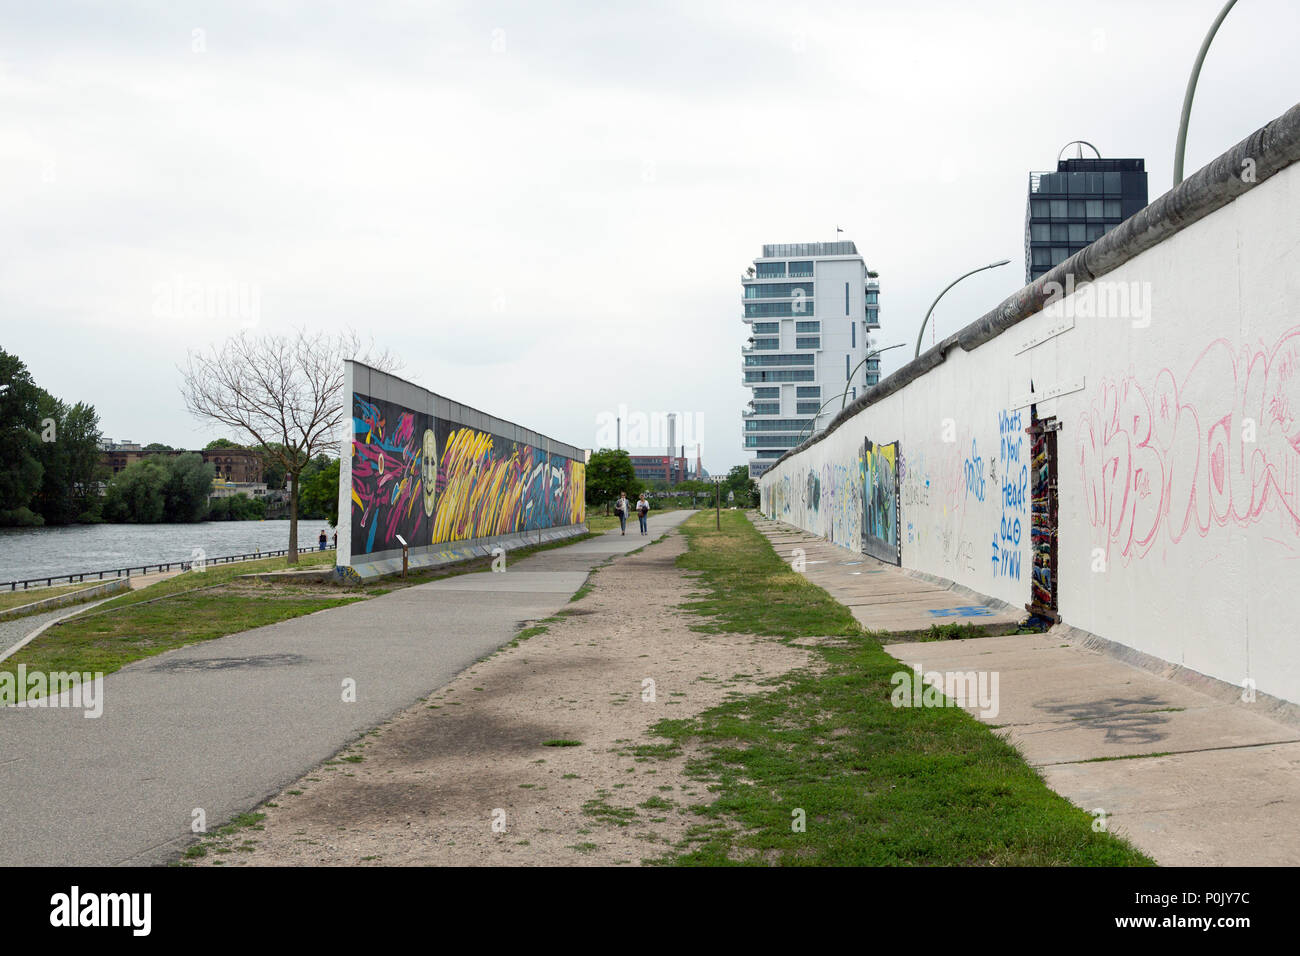 East side Gallery parts of the Wall in Berlin, Germany - Stock Image